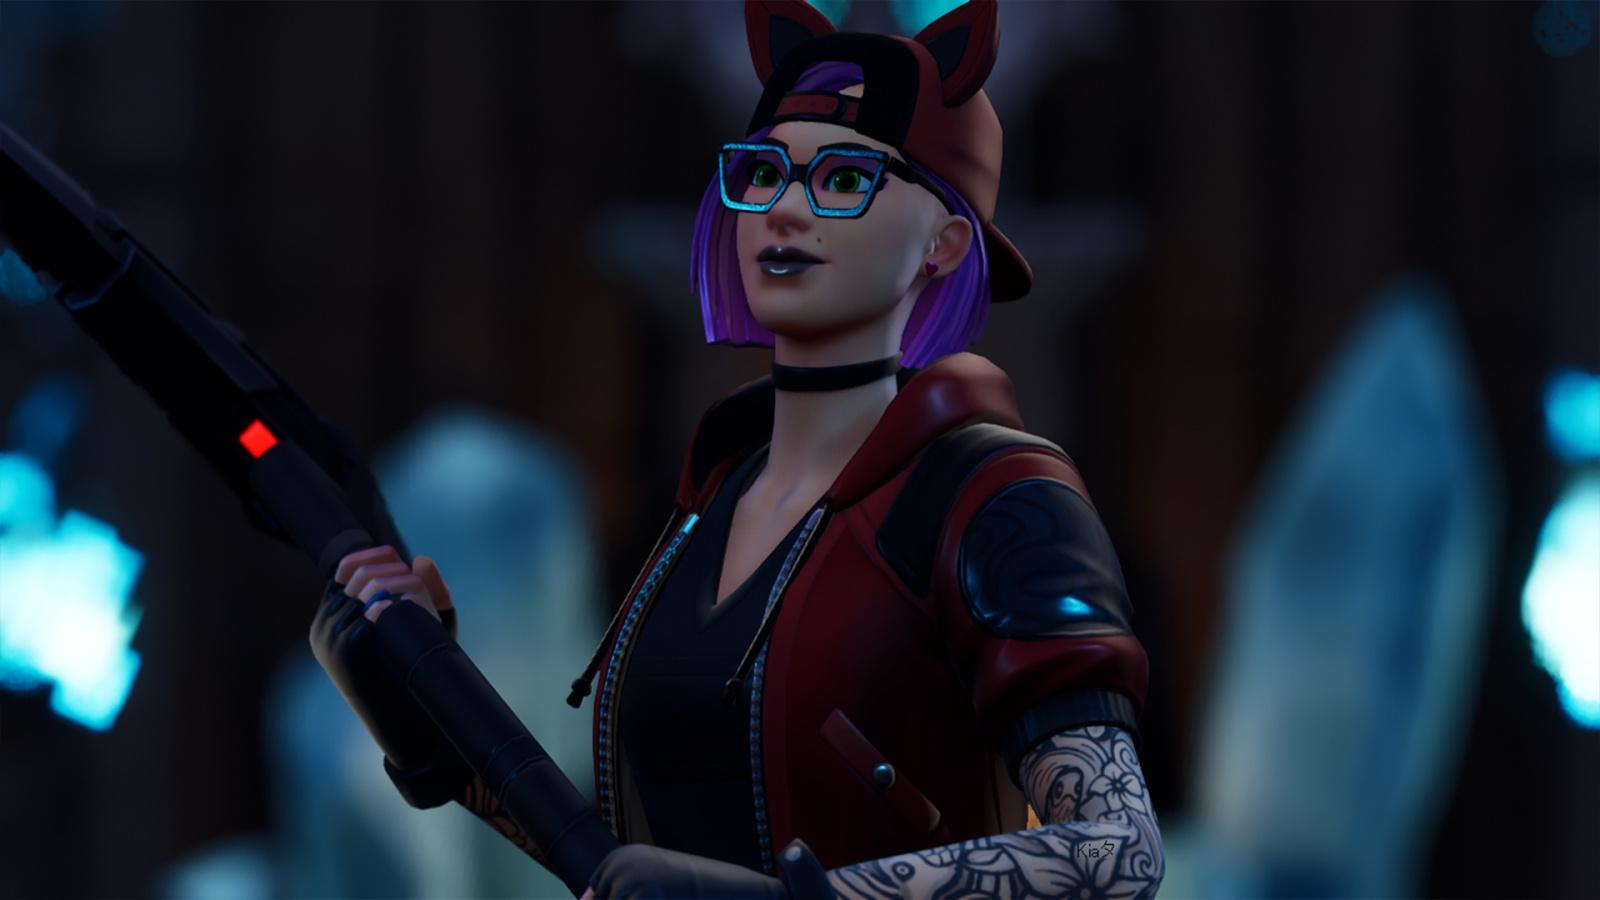 Downaload Glasses, woman skin, urban girl, Fortnite wallpaper ...